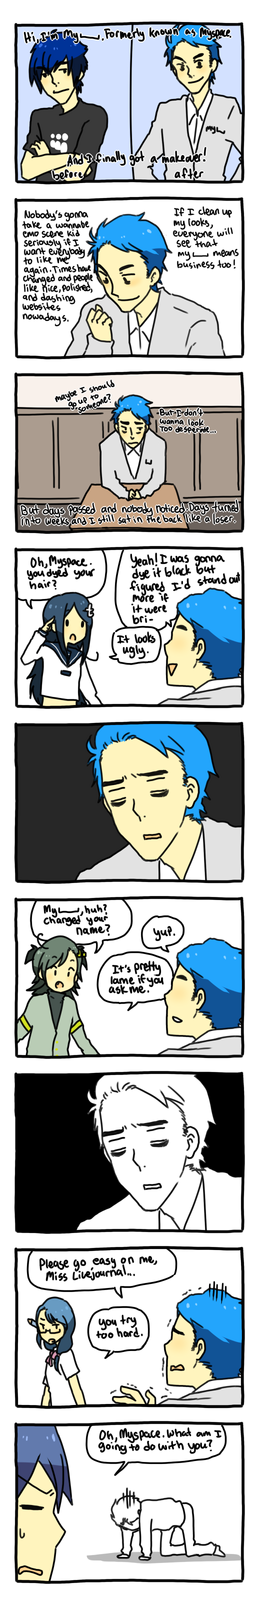 myspace_comic.png